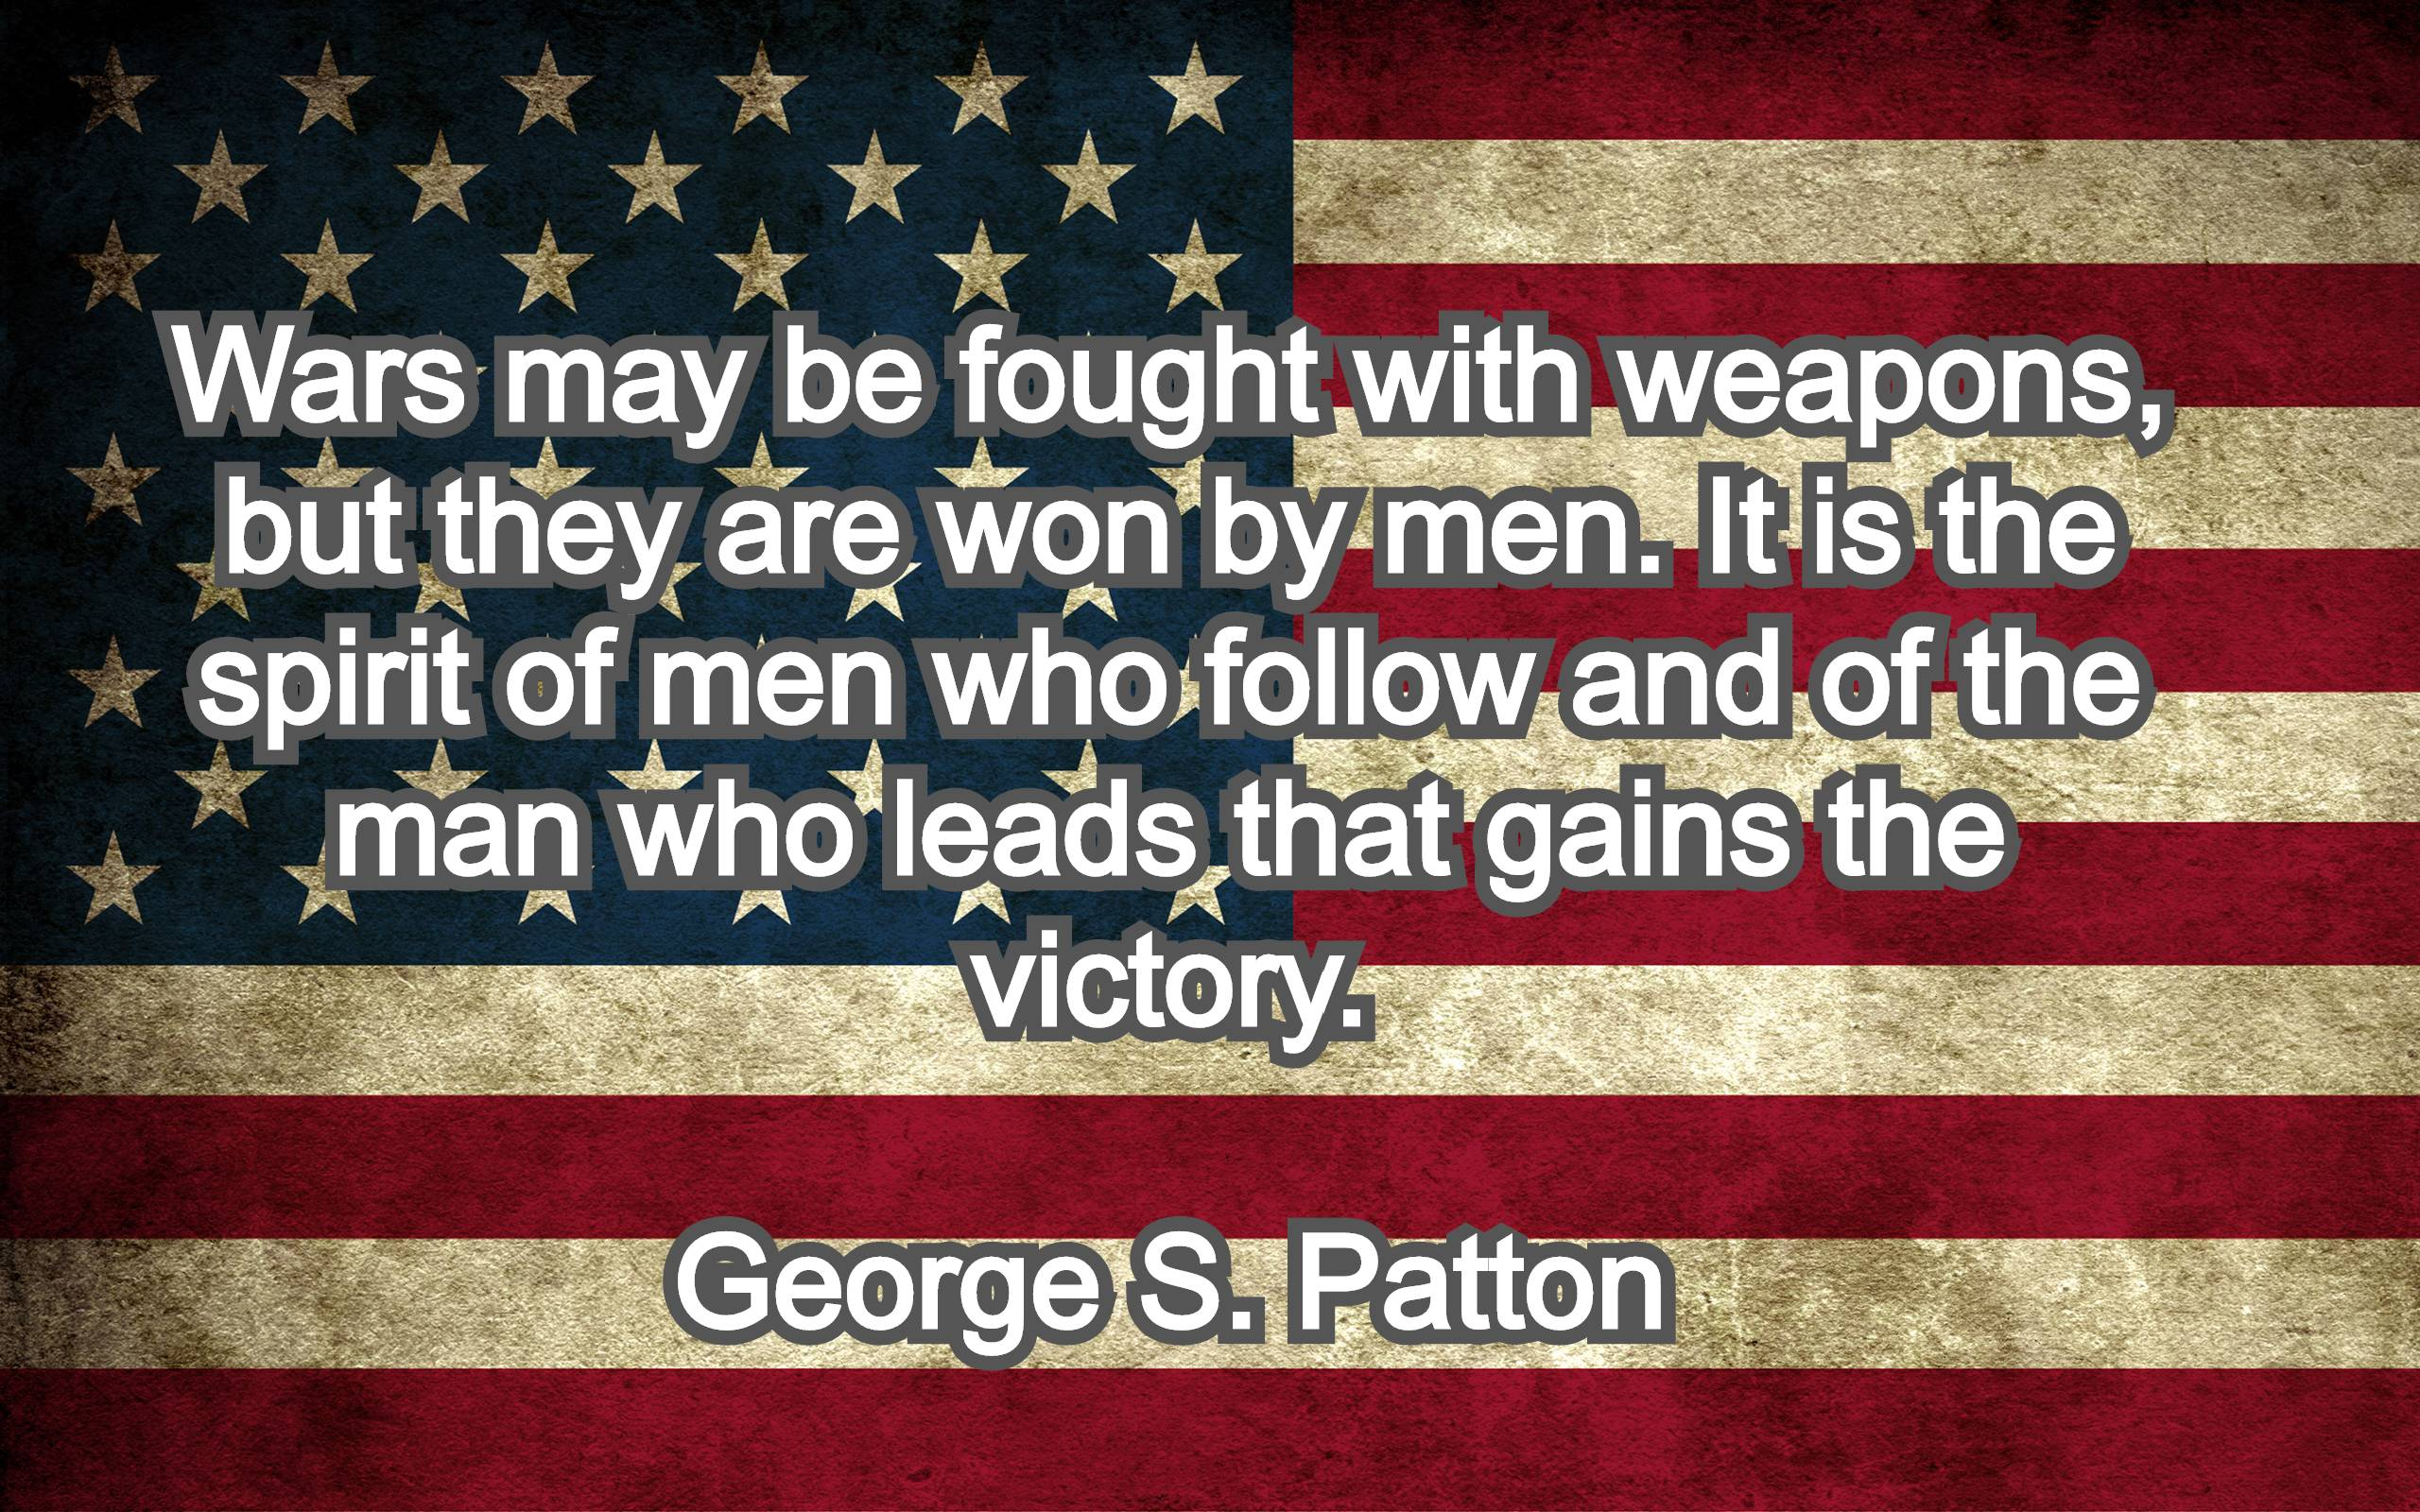 Wars may be fought with weapons, but they are won by men. It is the spirit of men who follow and of the man who leads that gains the victory. George S. Patton